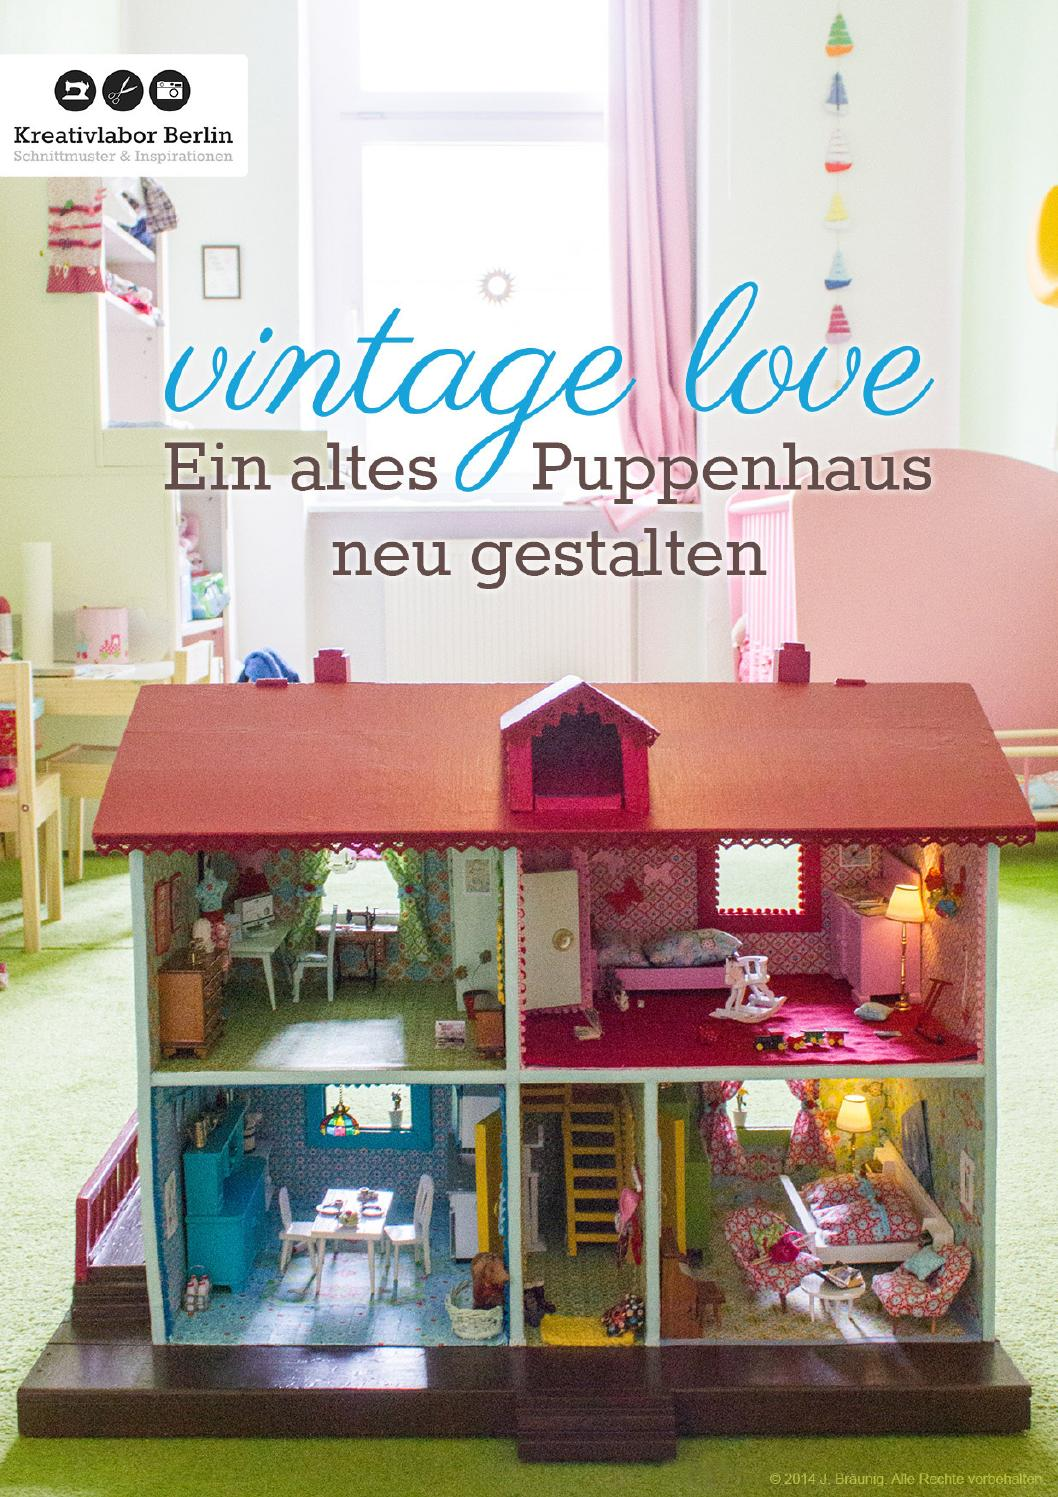 vintage love ein altes puppenhaus neu gestalten by kreativlaborberlin issuu. Black Bedroom Furniture Sets. Home Design Ideas